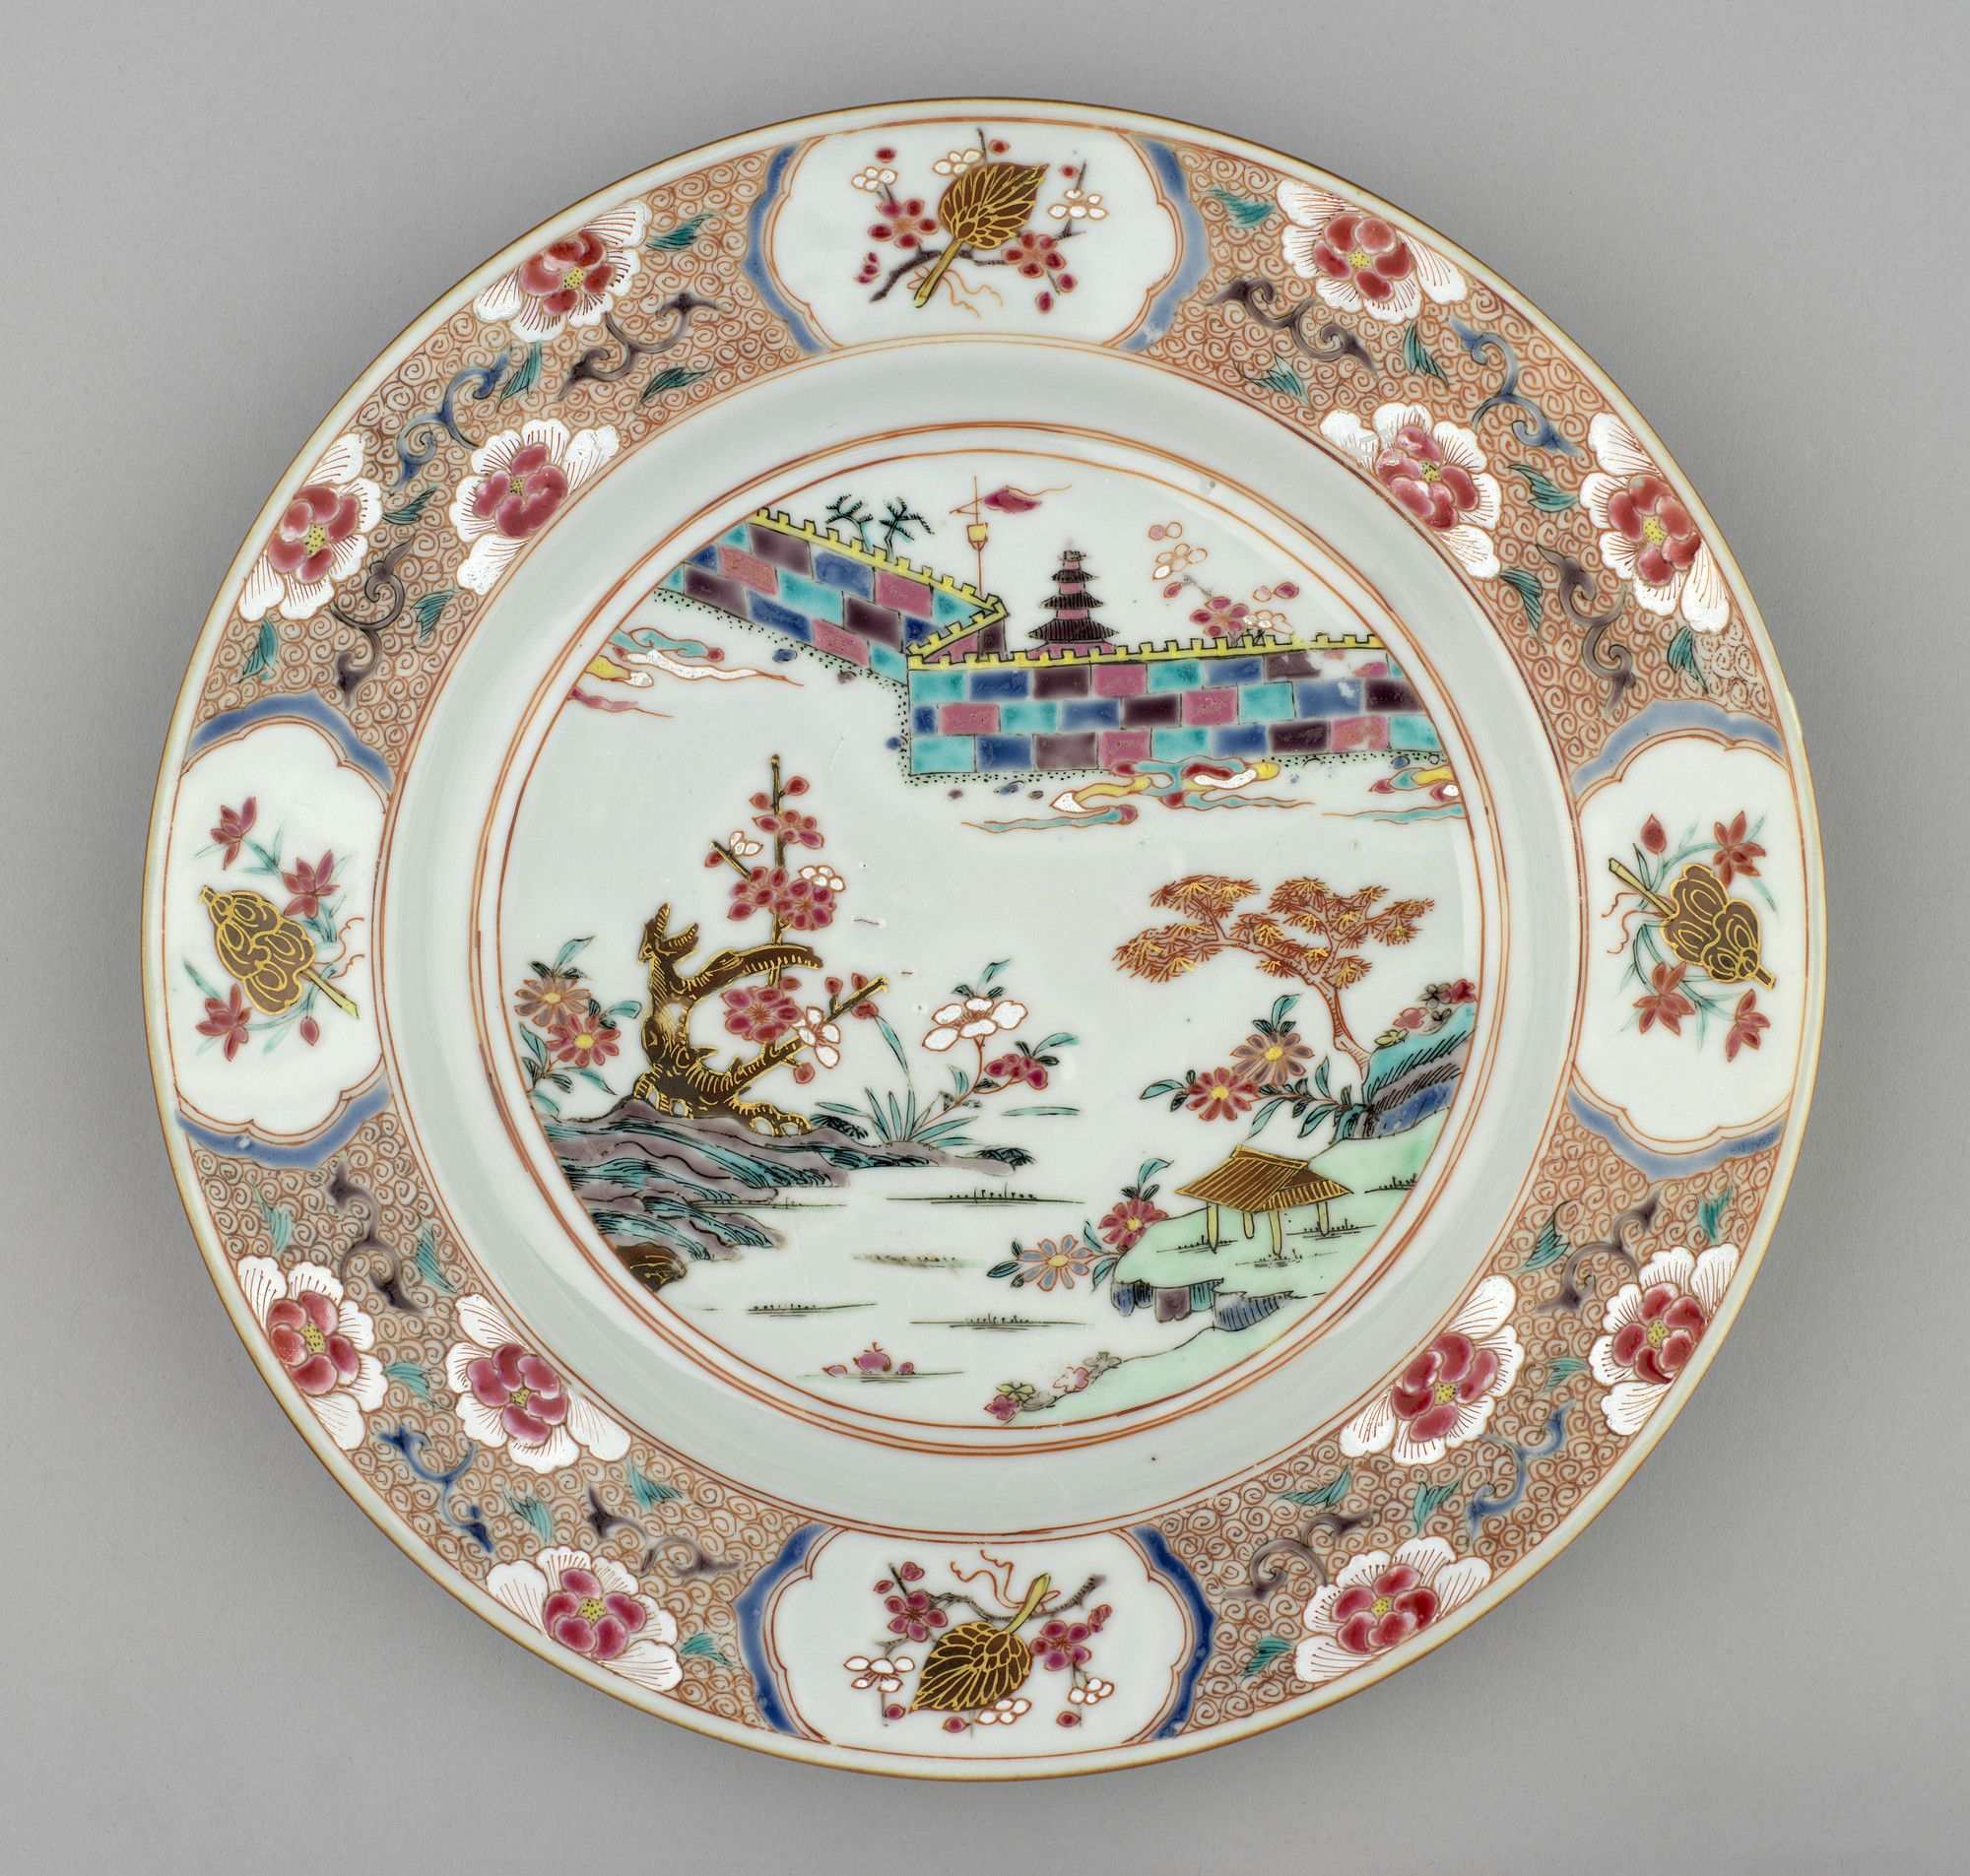 Jingdezhen Porcelain Jiangxi Province China Plate C 1730 1750 Royal Collection Trust Her Majesty Qu Antique Porcelain Chinese Ceramics Chinese Pottery